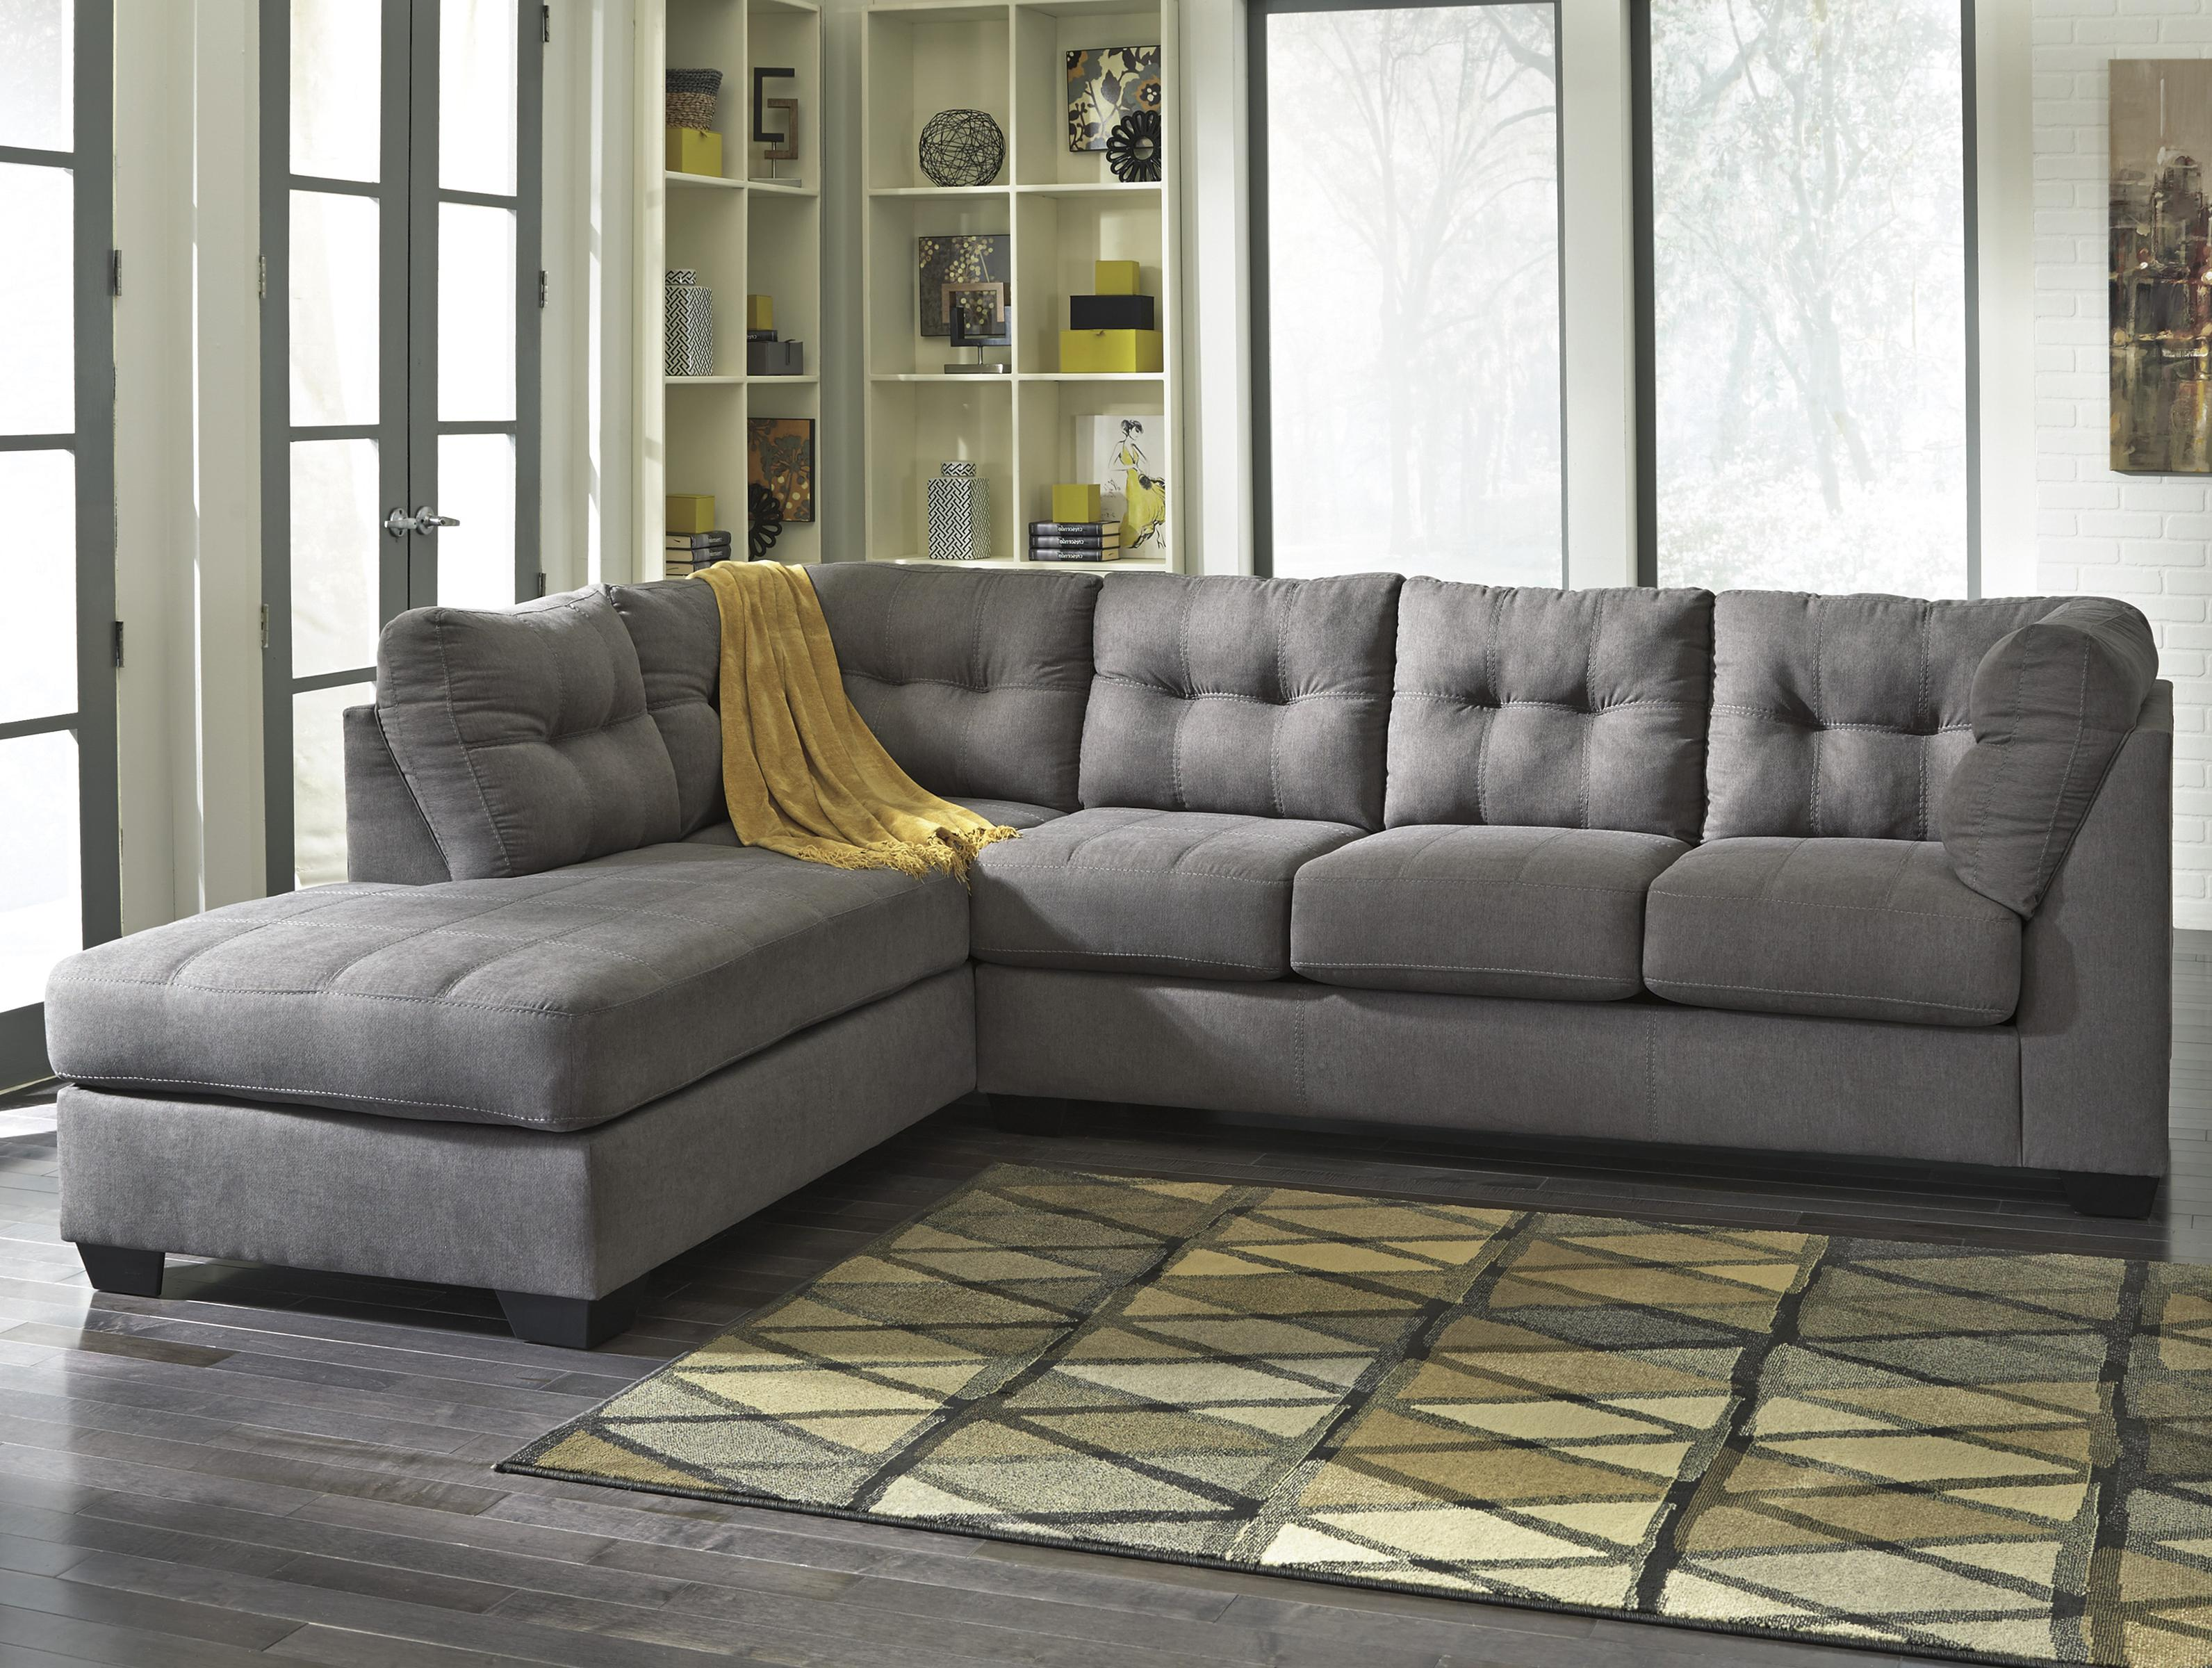 Benchcraft Maier Charcoal 2 Piece Sectional with Left Chaise